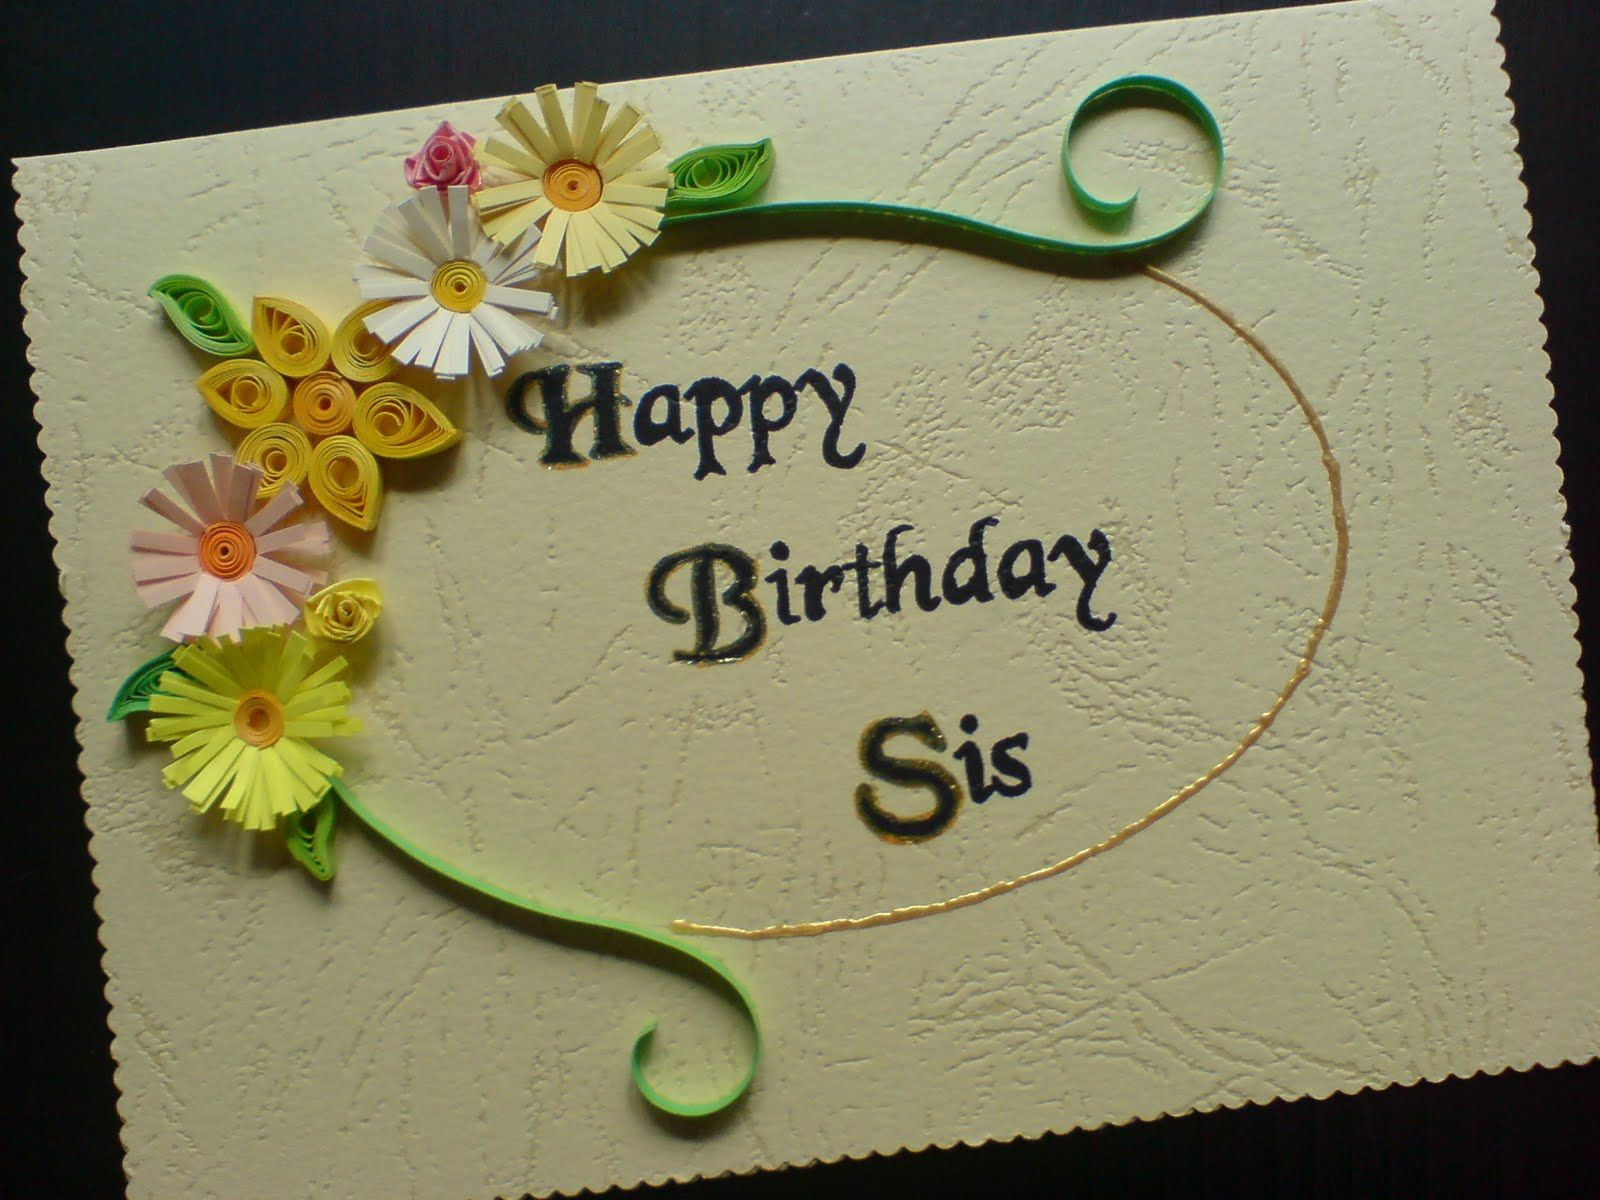 Happy Birthday Sis Wallpaper Happy Birthday Sister